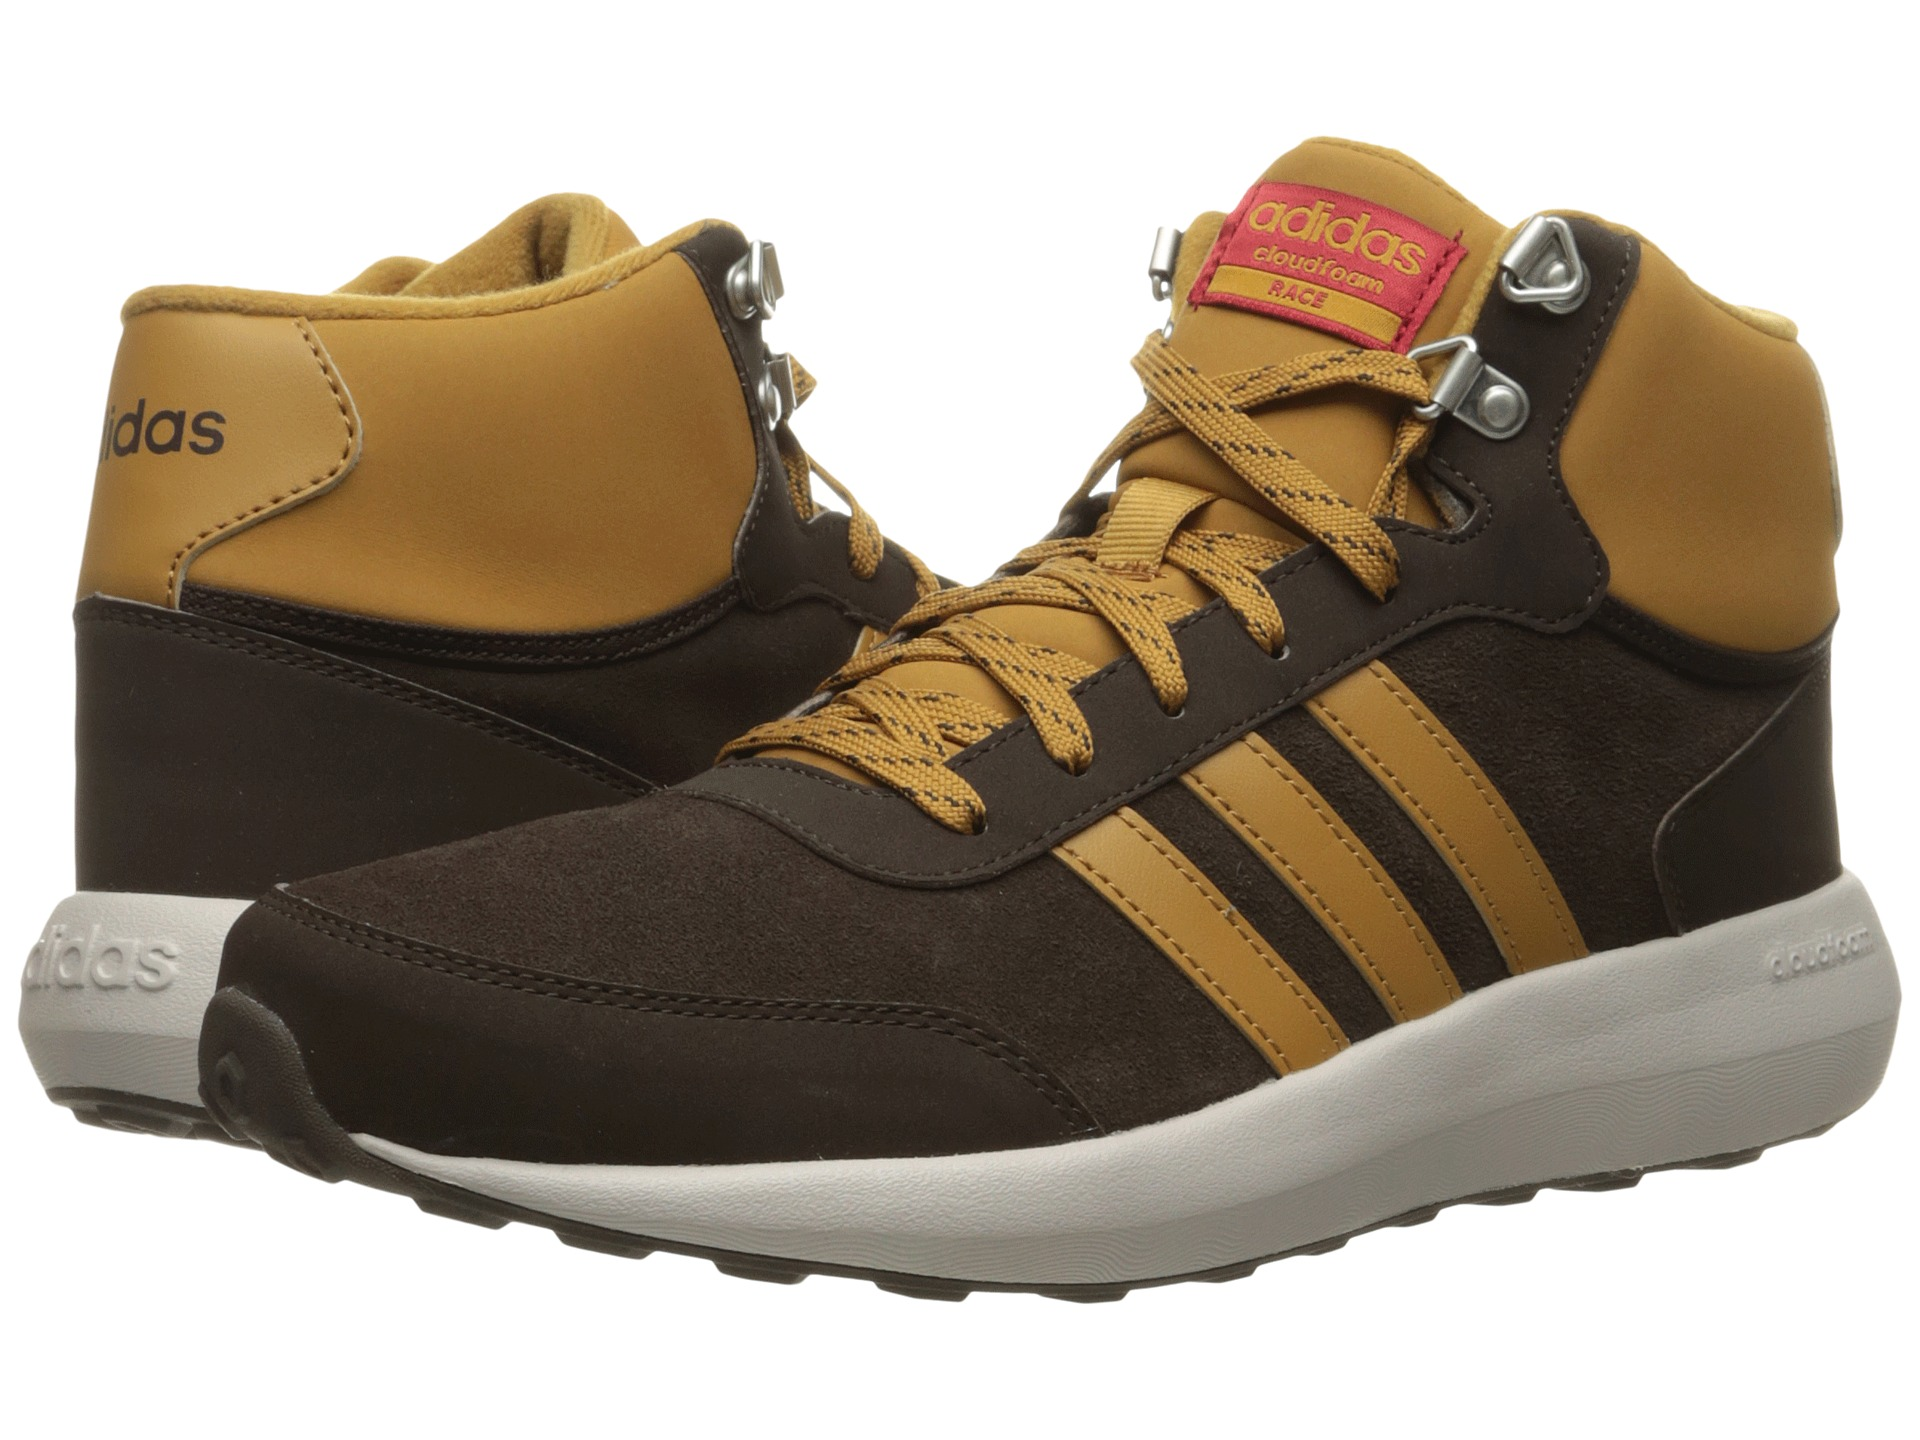 adidas Cloudfoam Race Winter Mid at 6pm.com